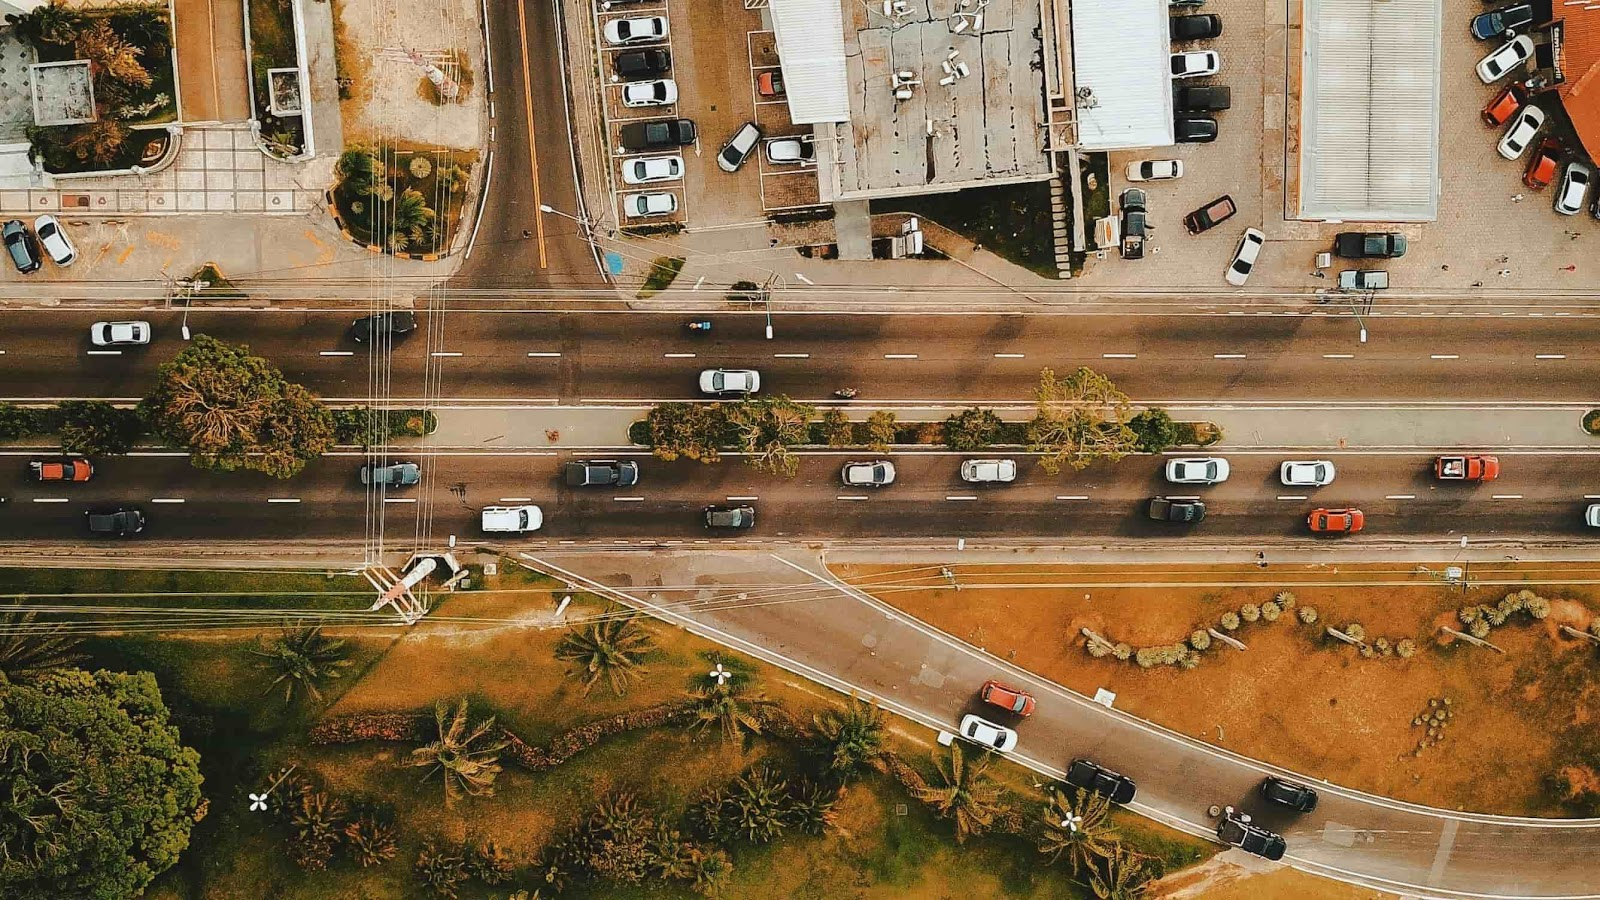 overhead view of street